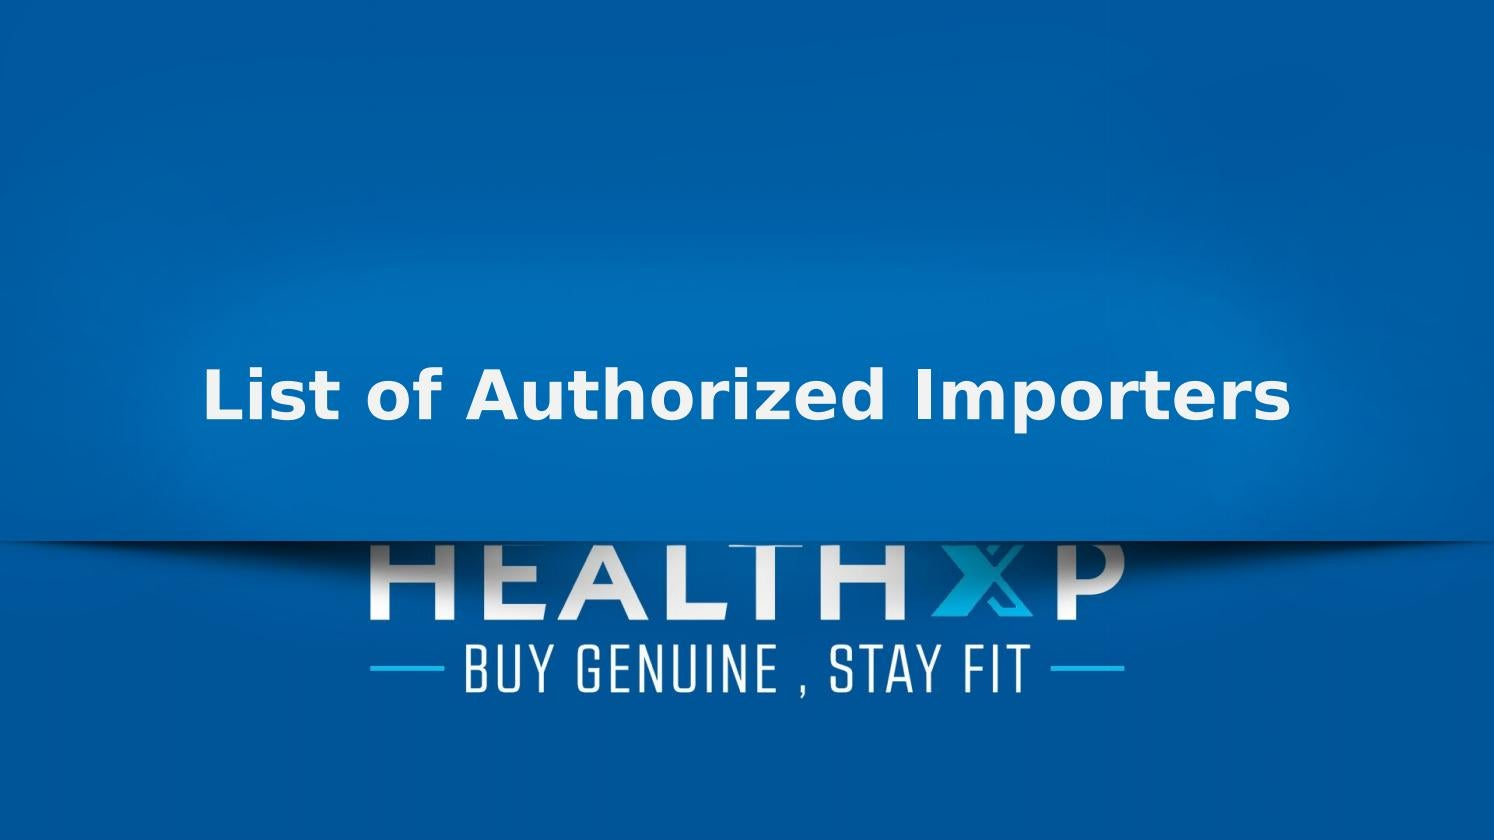 List of Authorized importers | HealthXP by Amrita Malhotra